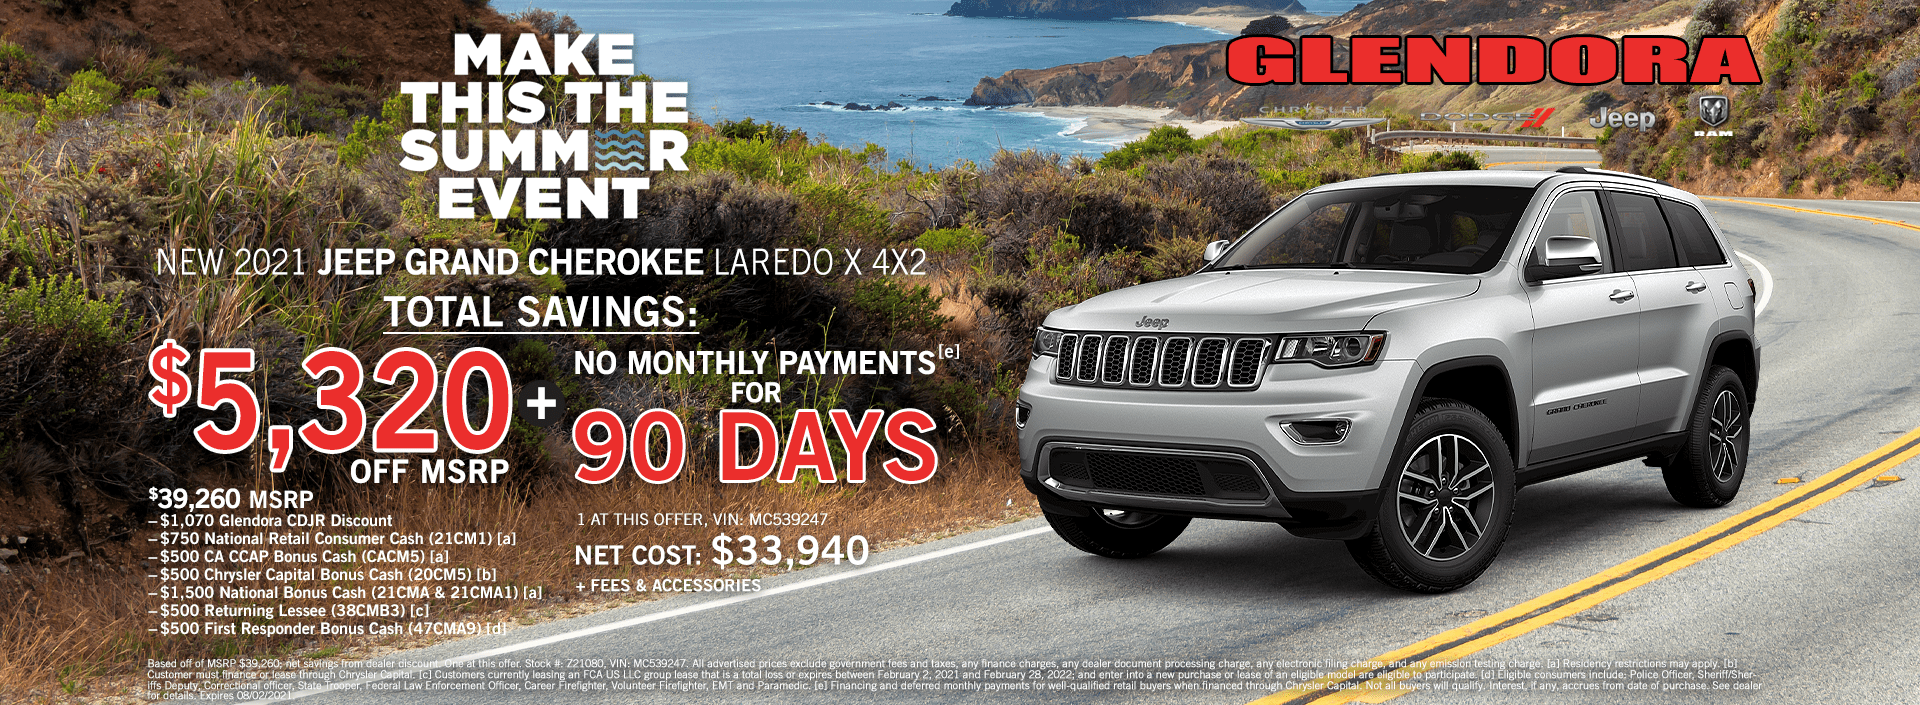 July 2021 Jeep Grand Cherokee Special